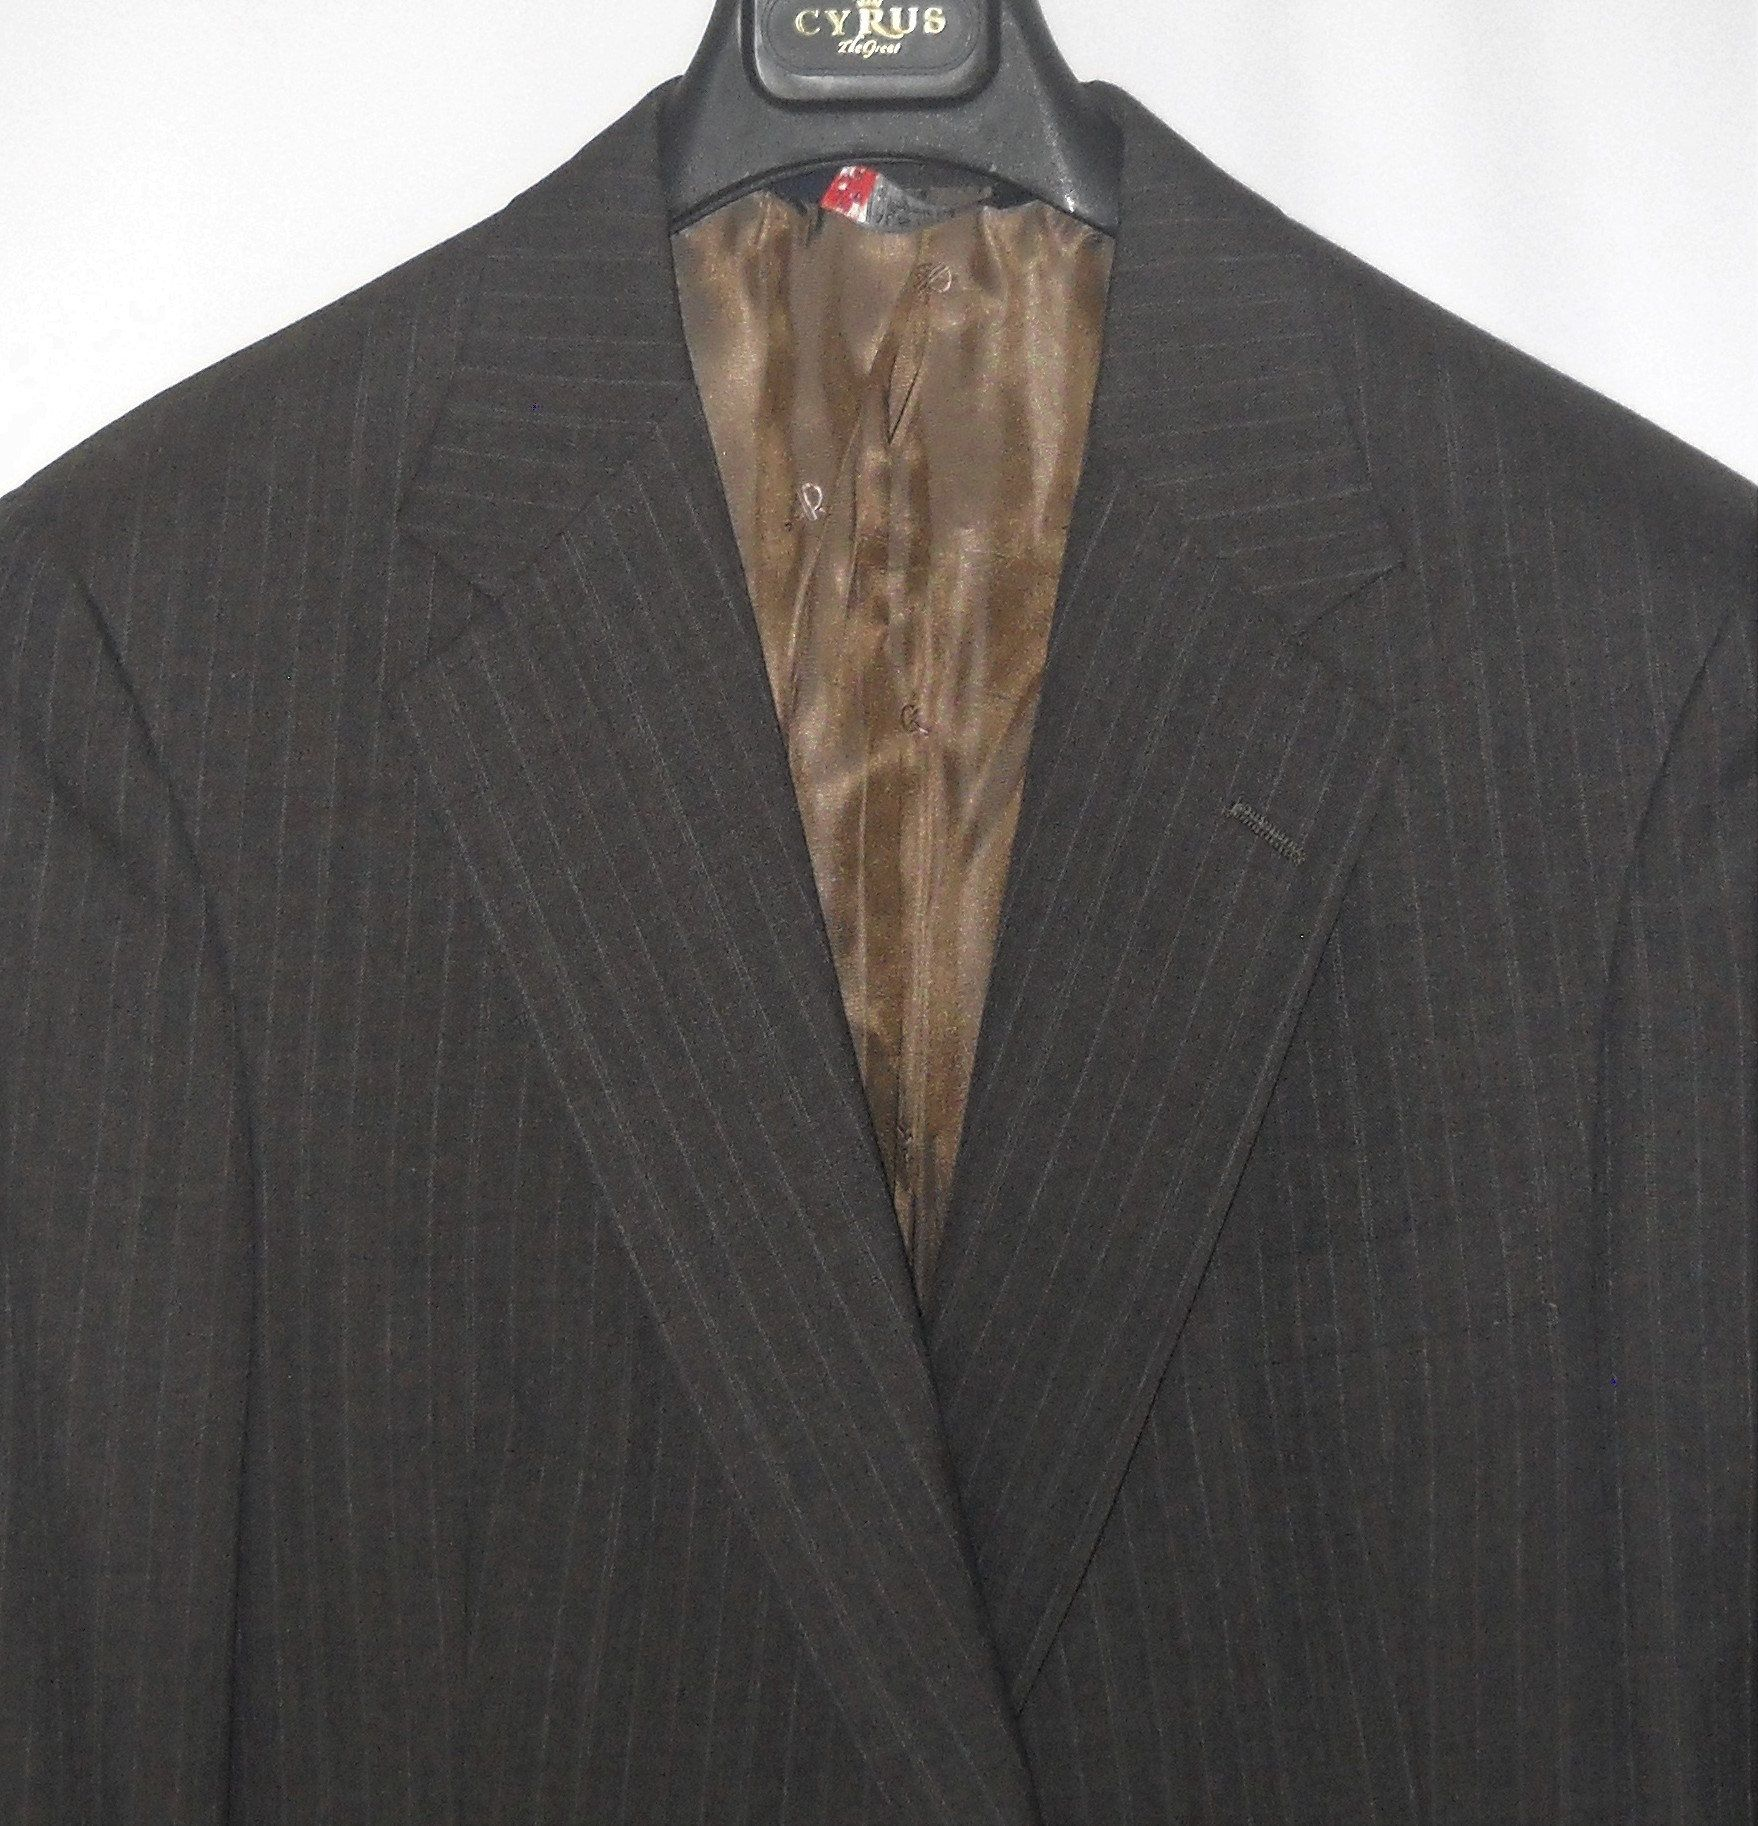 44r Austin Reed Regent Street Ayrshire Gray Pinstripe 2 Button Etsy In 2020 Brown Pinstripe Cuffed Pants Austin Reed